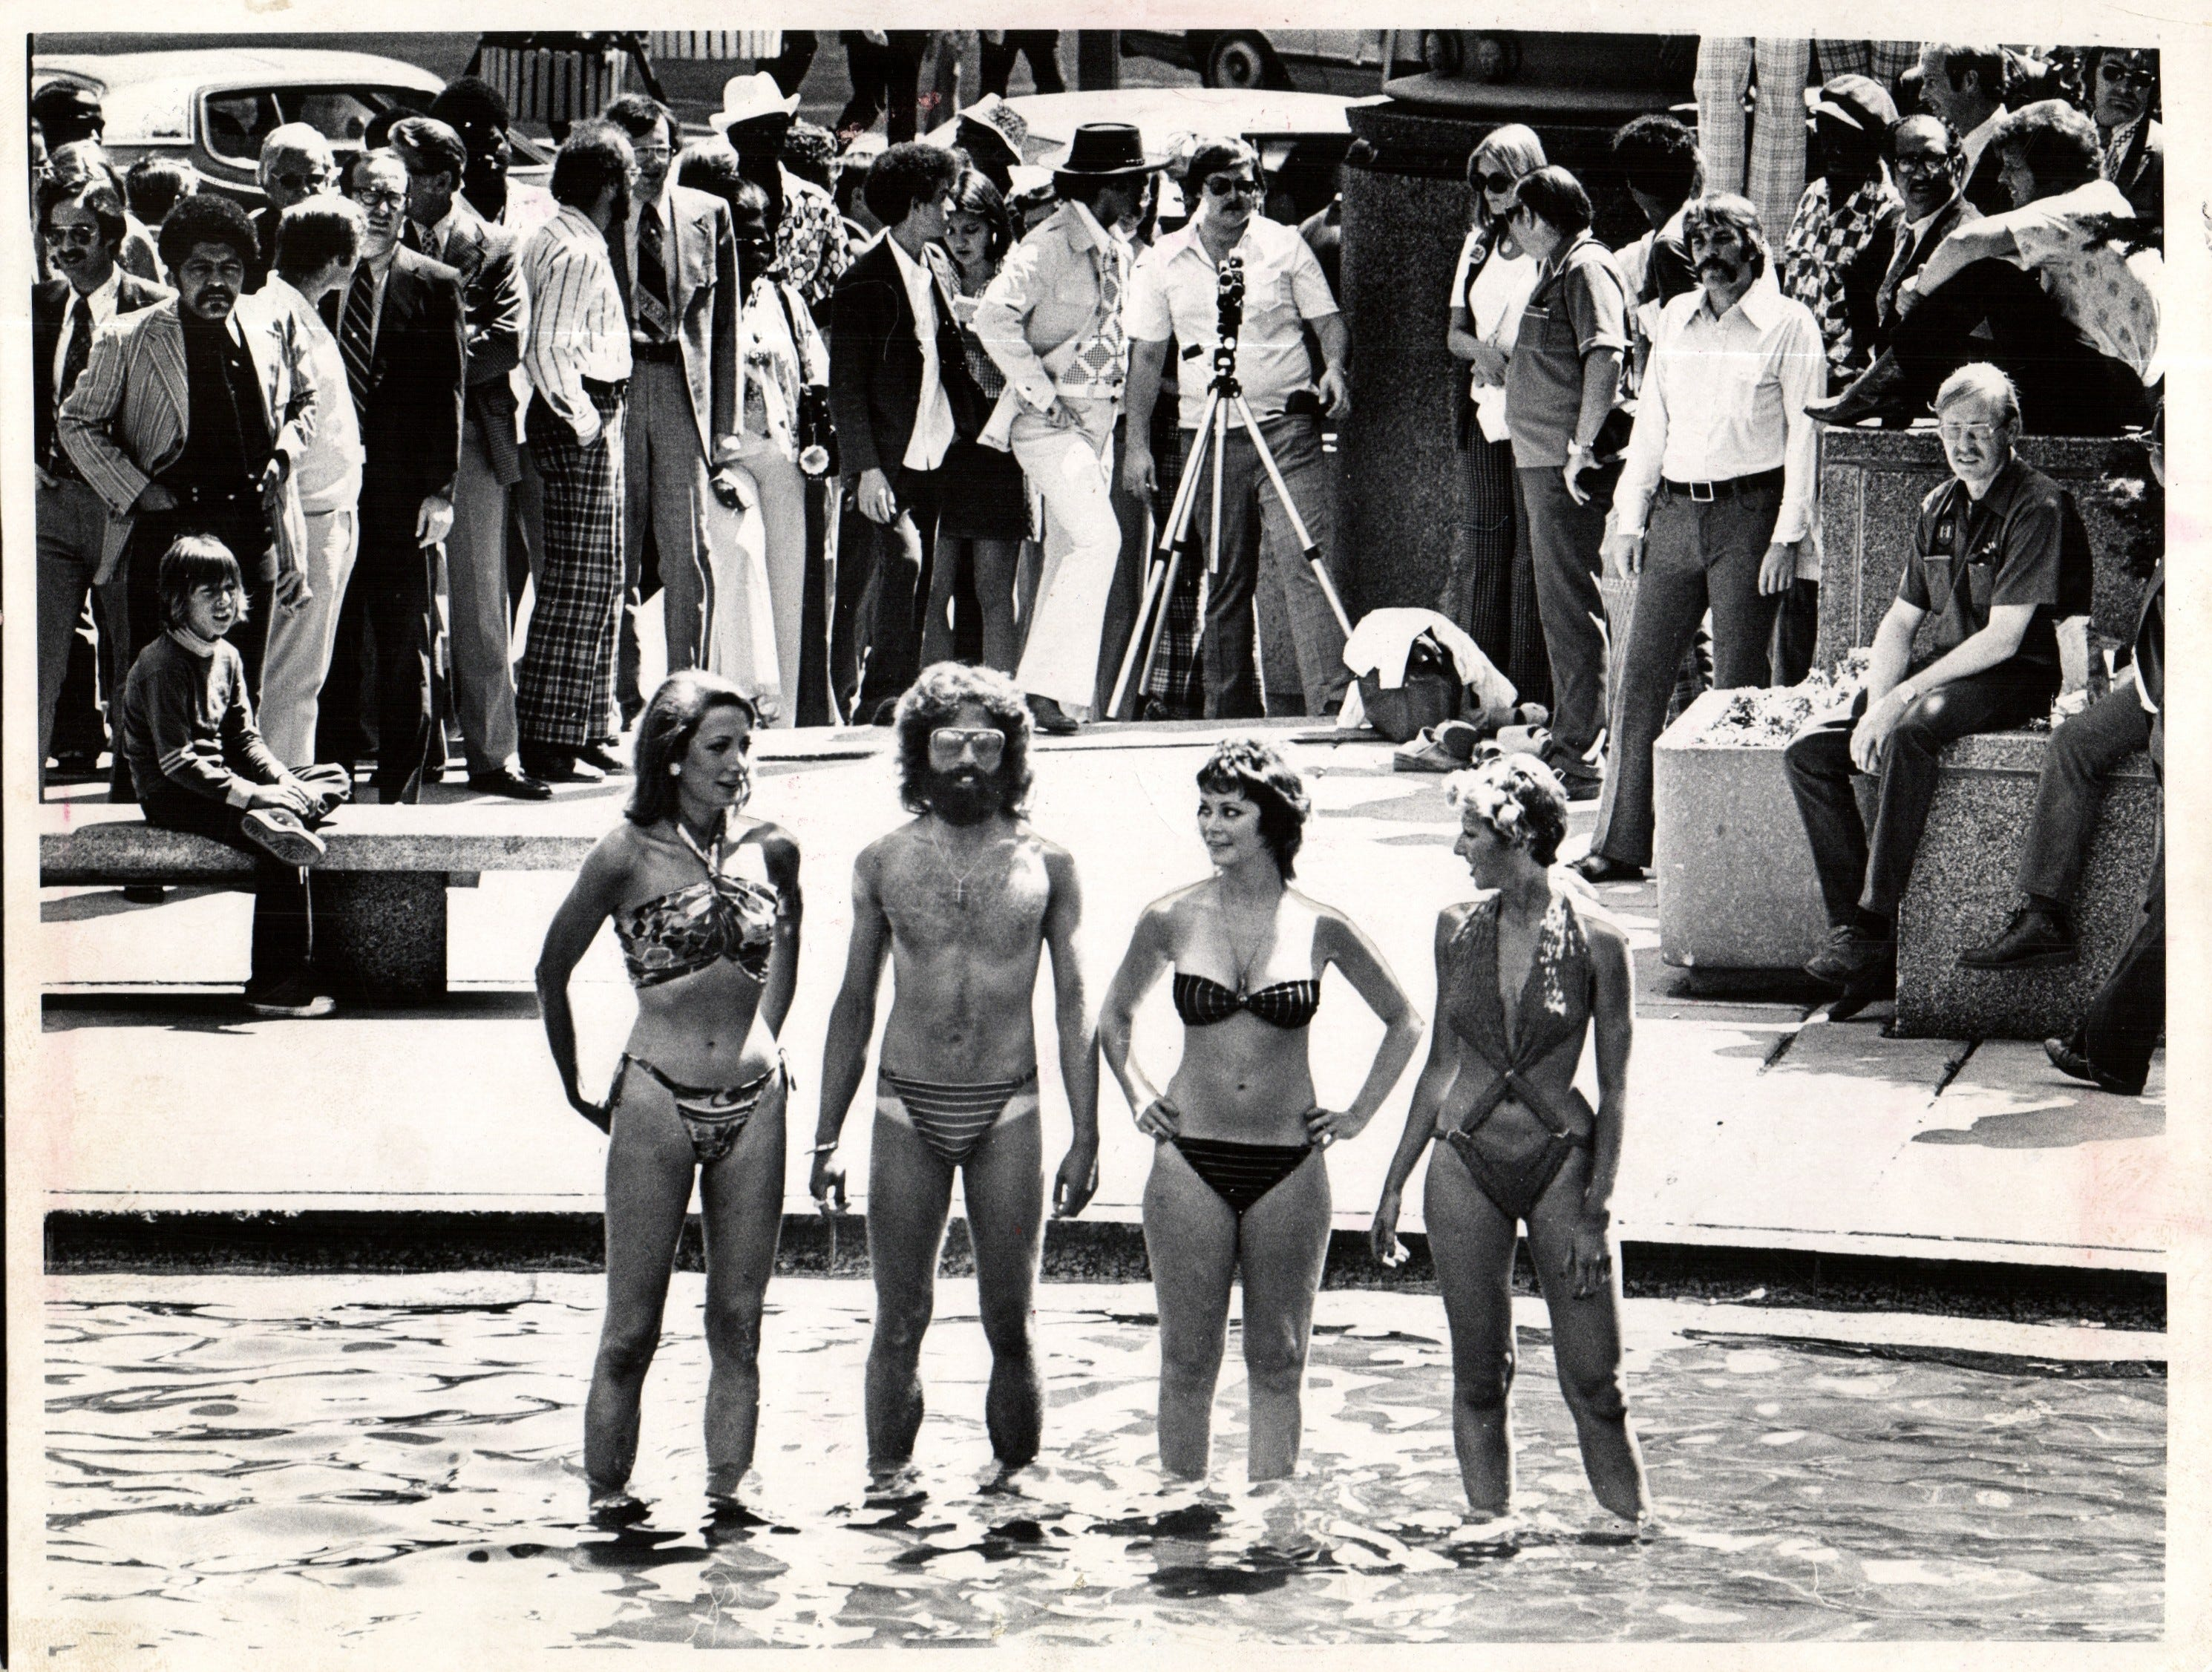 Bikini models are spotted during lunch time at Kennedy Square in 1974.